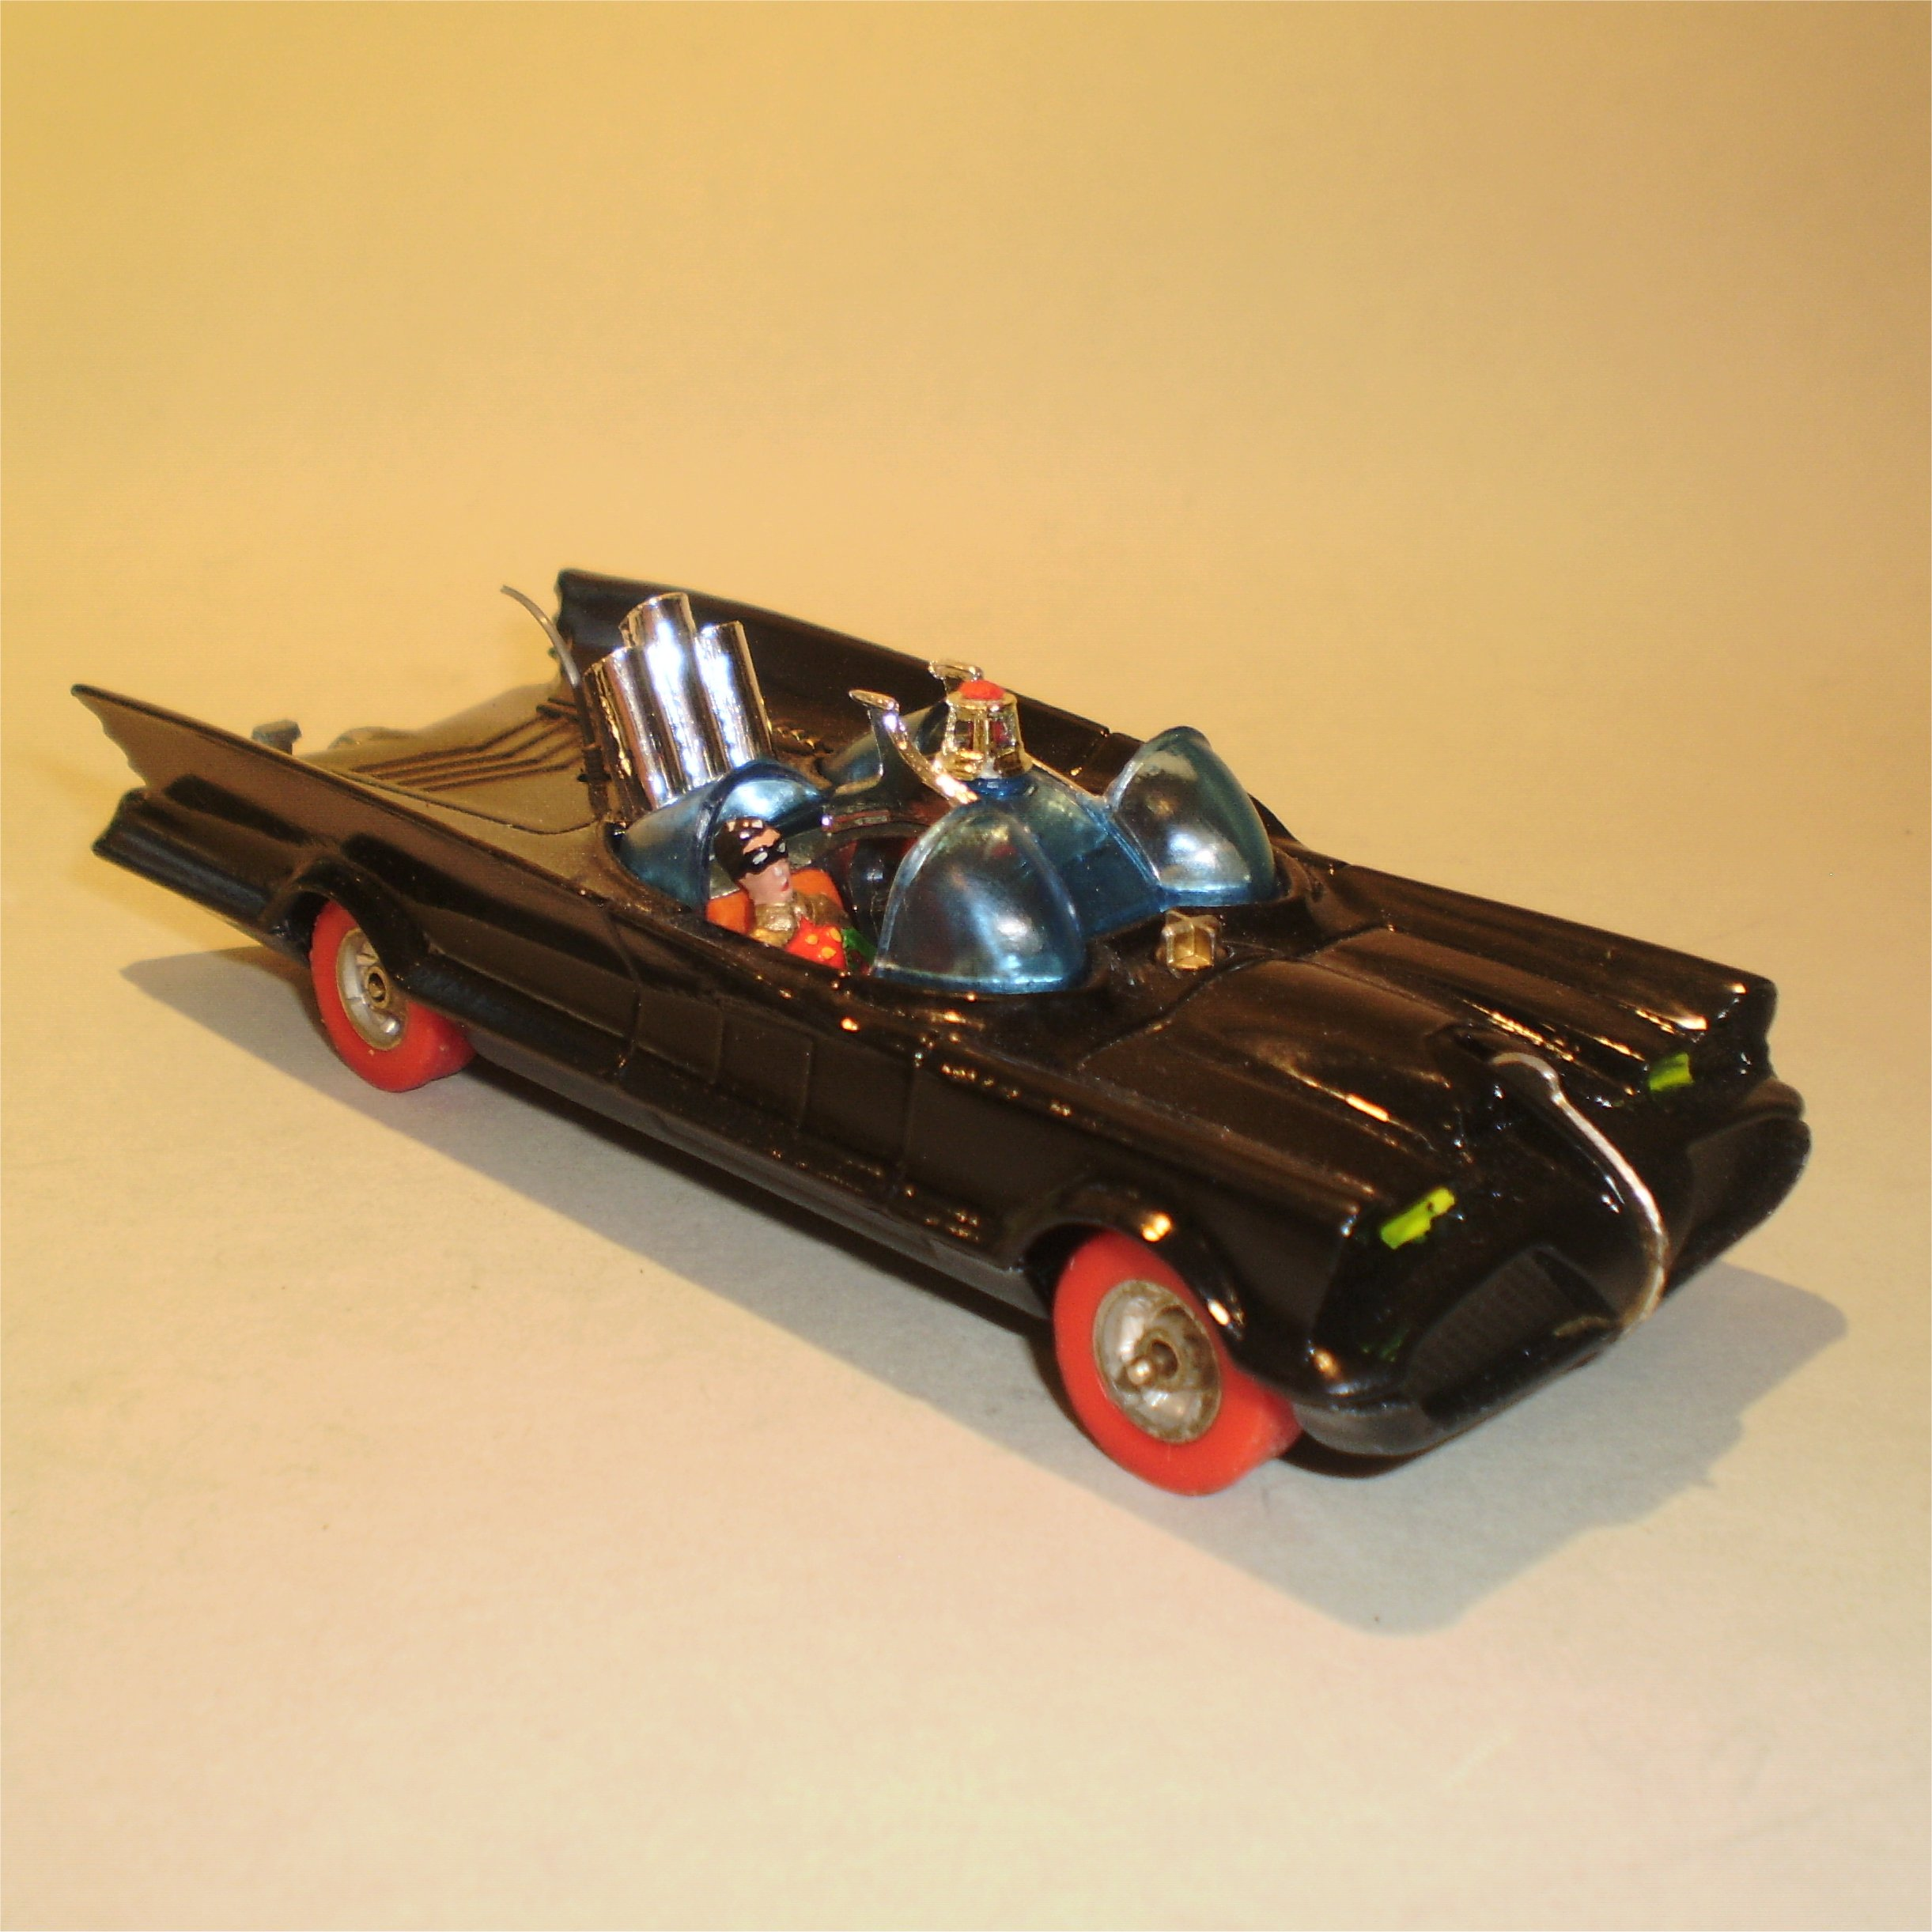 0267-redwheel-batmobile-1